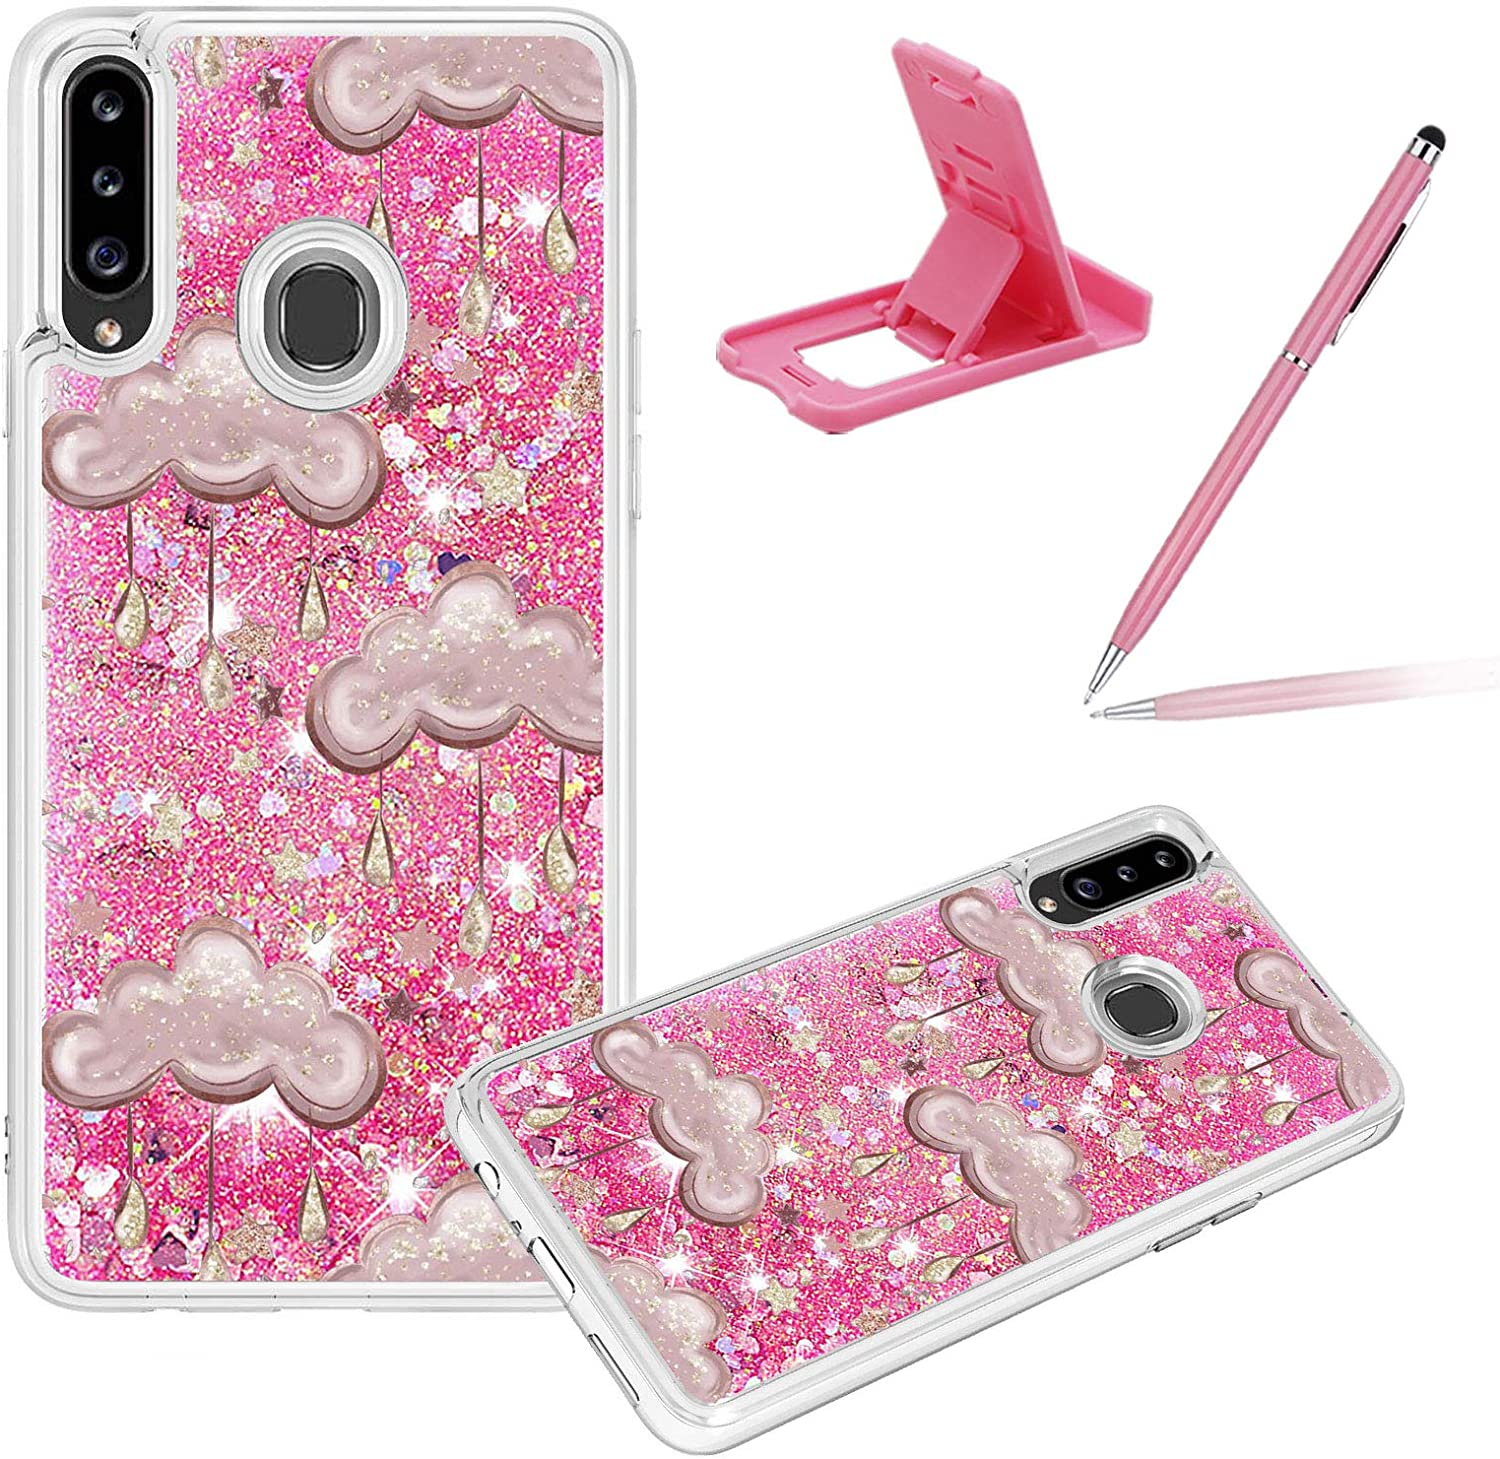 Liquid Clear Case for Samsung Galaxy Girls Women Co Glitter Ultra-Cheap Deals Challenge the lowest price of Japan A20S